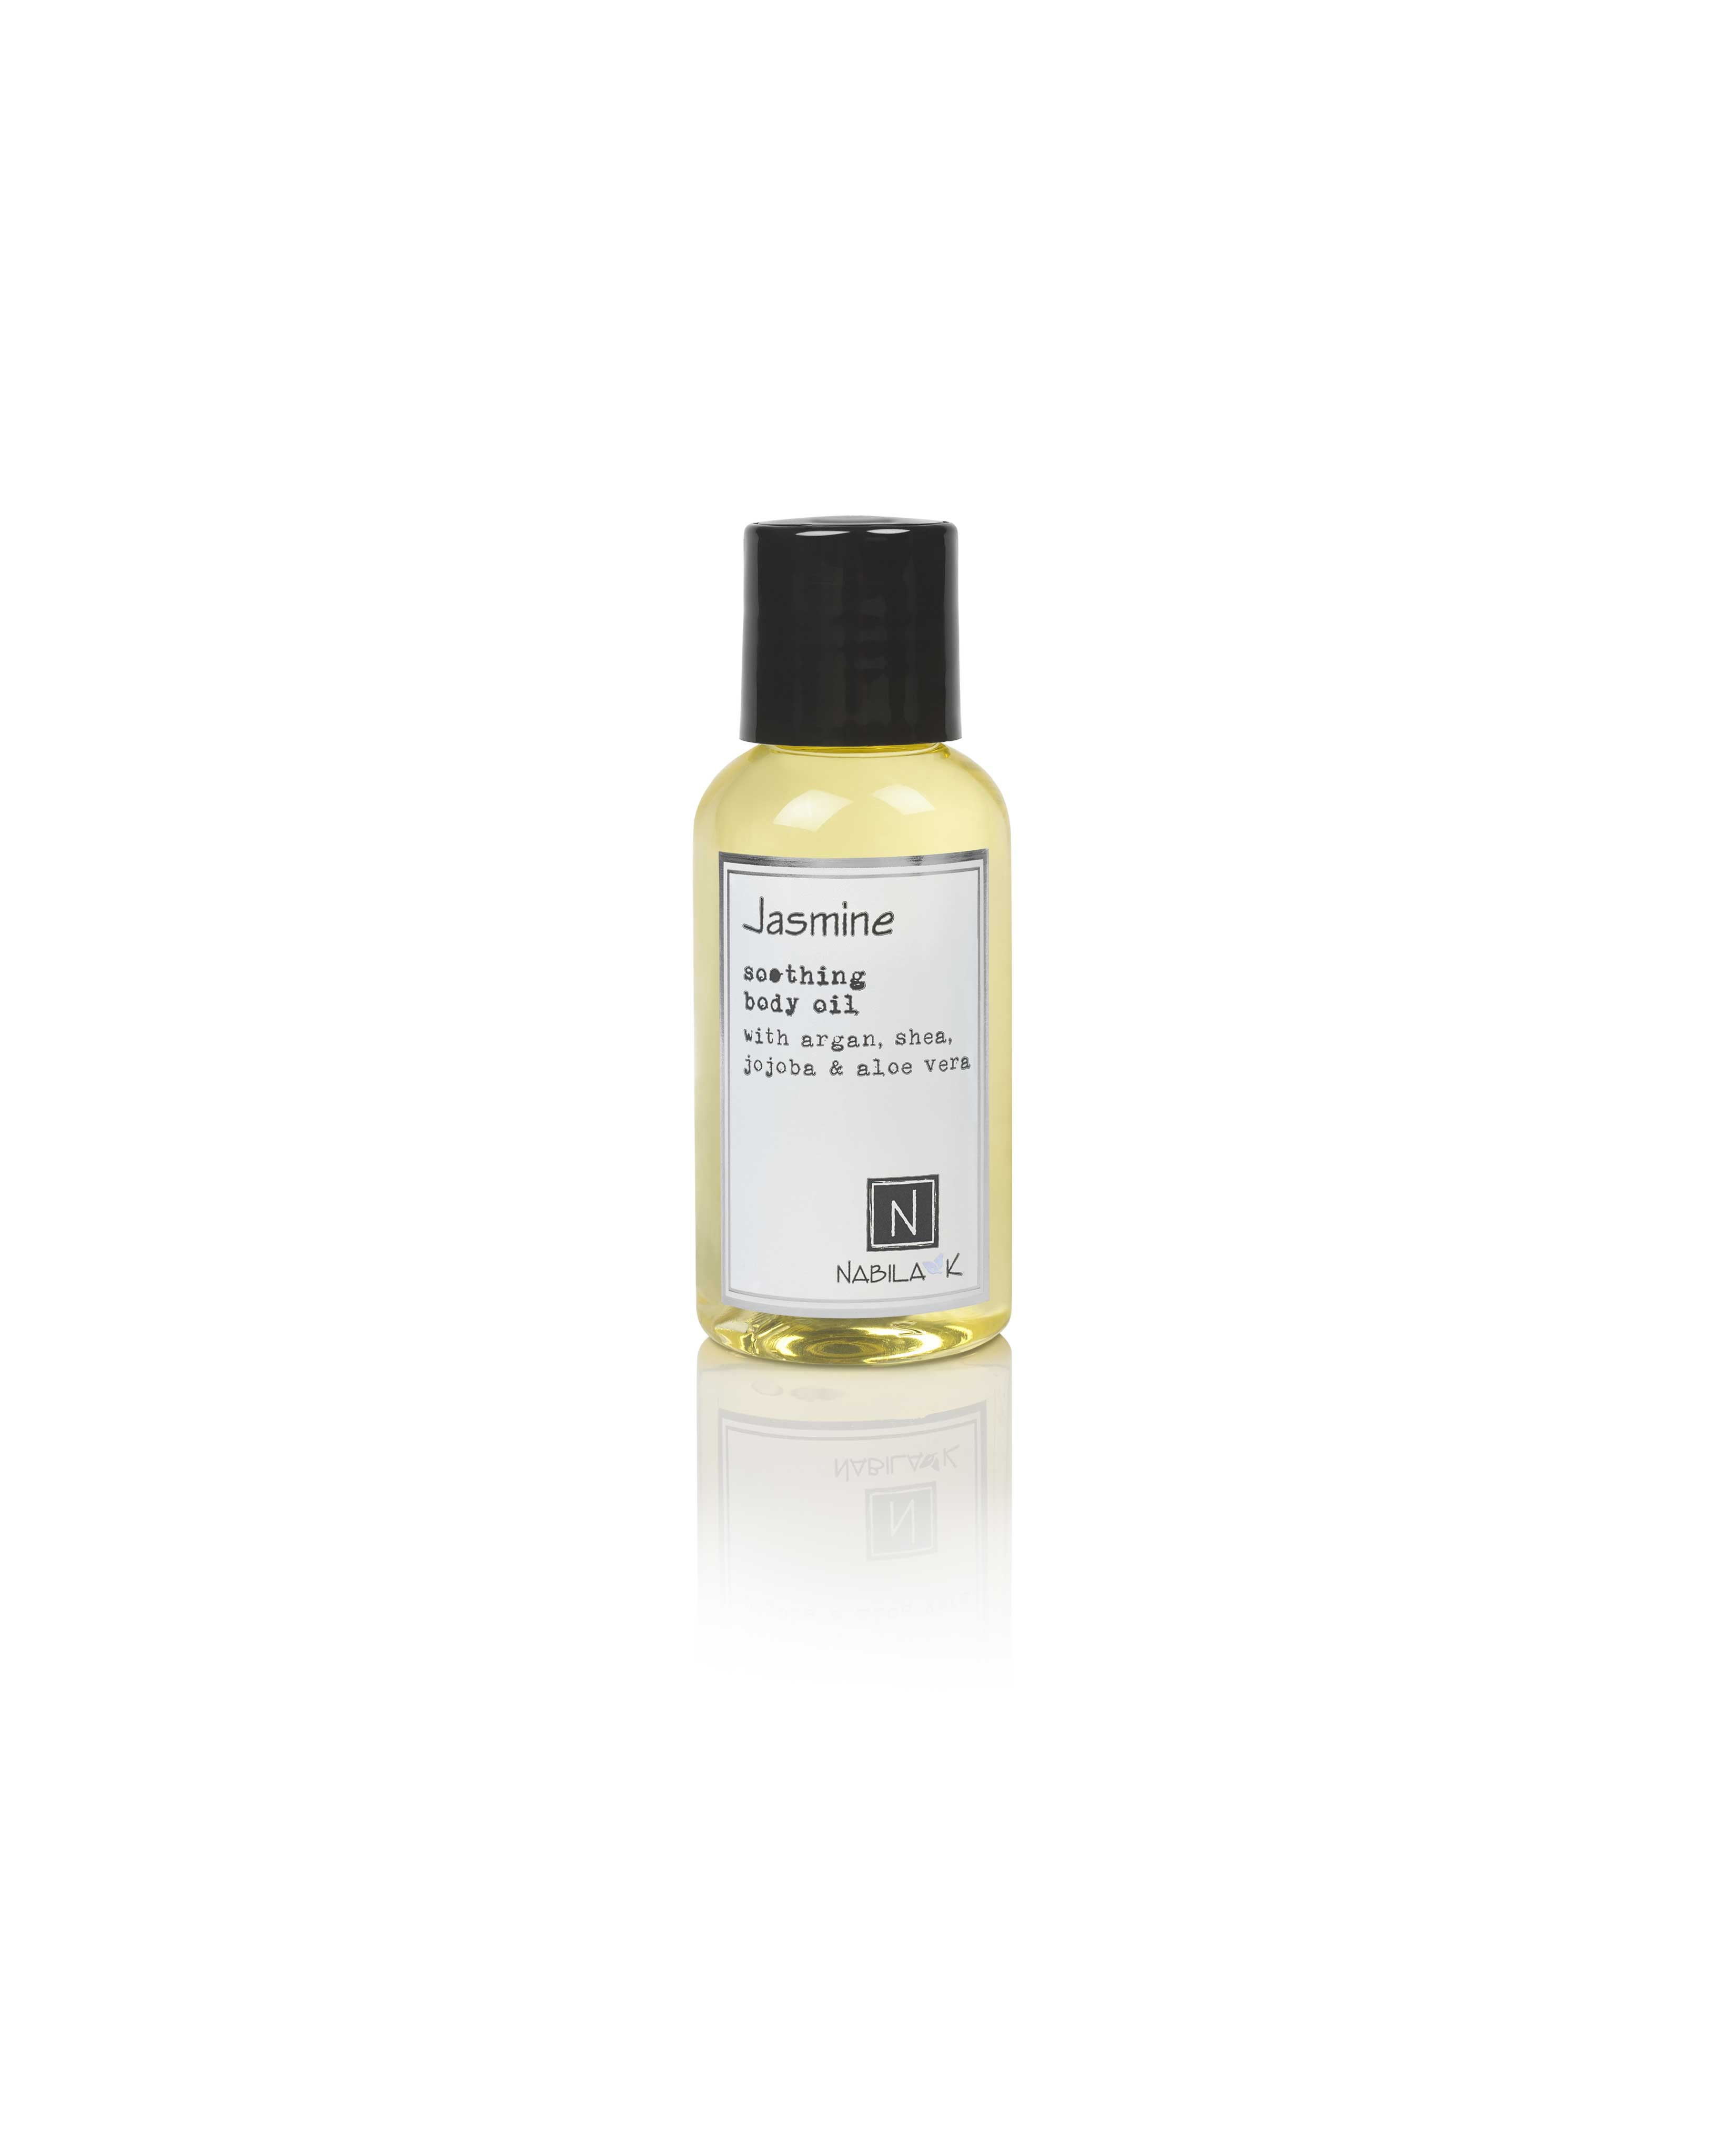 1 2.4oz Bottle of Jasmine Soothing Body Oil with Argan, shea, jojoba, and aloe vera